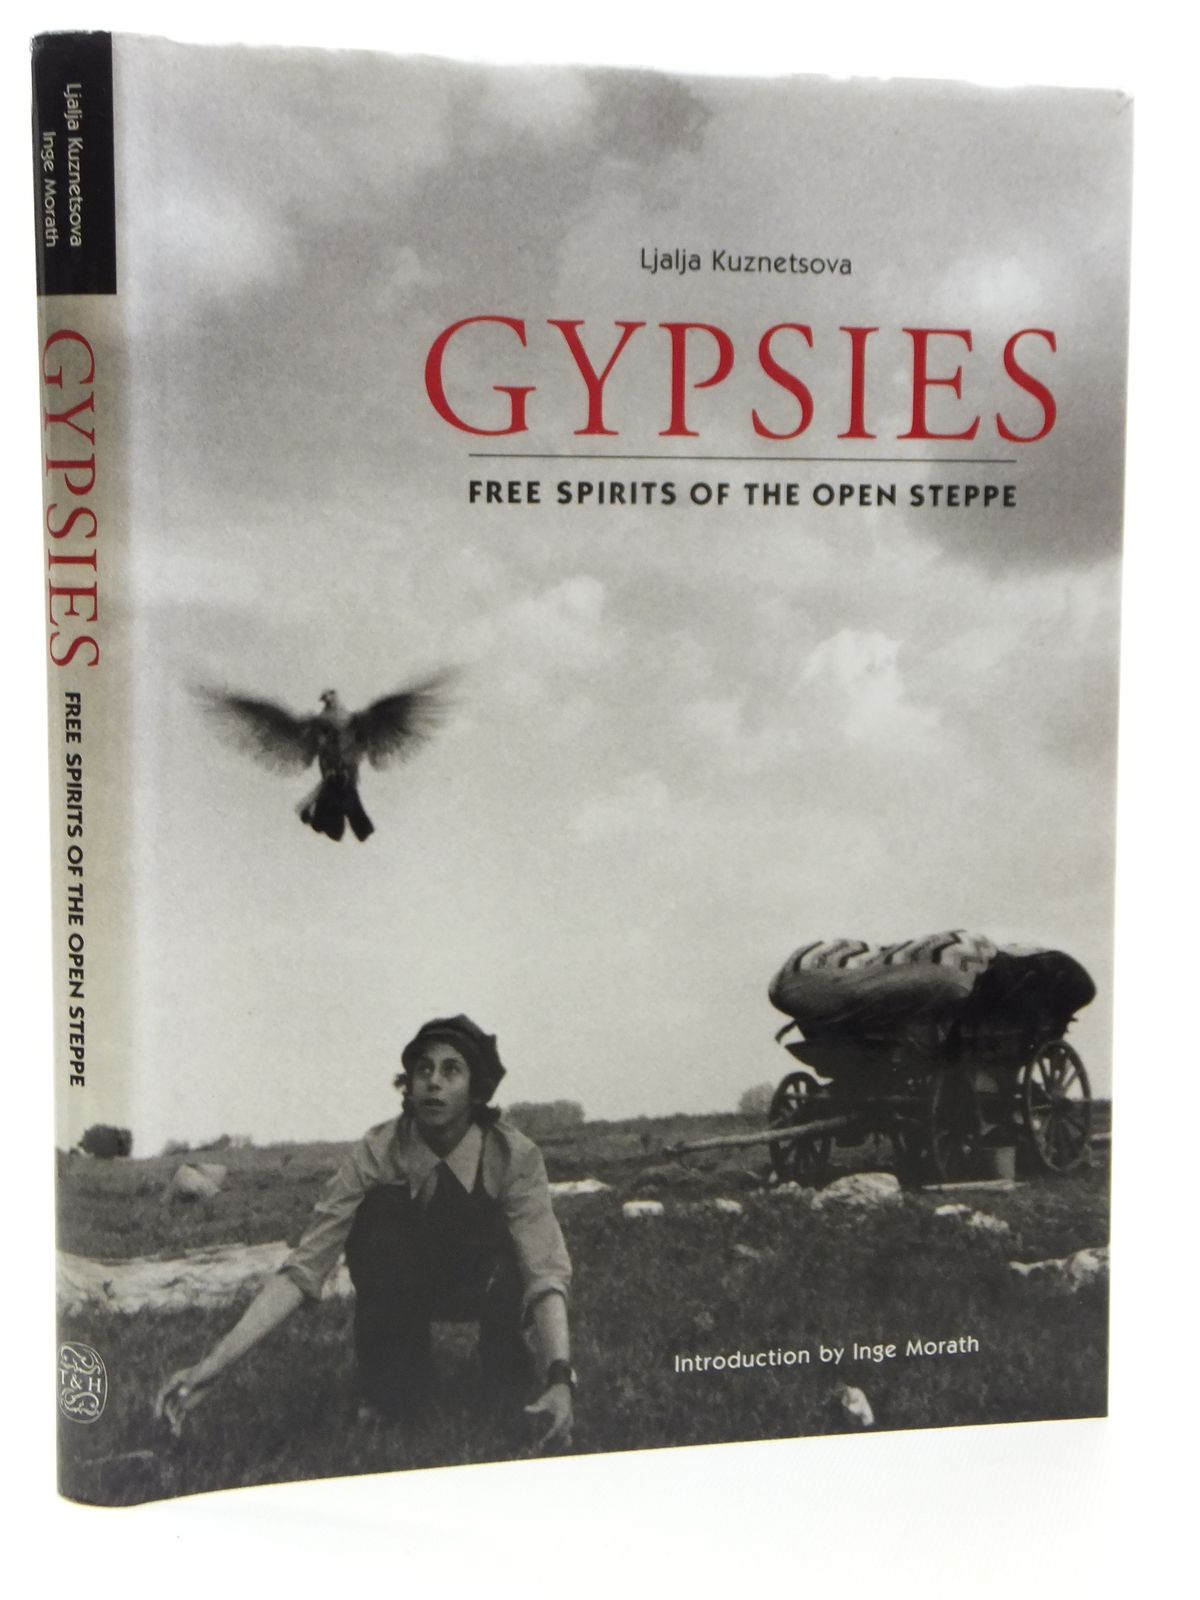 Photo of GYPSIES FREE SPIRITS OF THE OPEN STEPPE written by Kuznetsova, Ljalja published by Thames and Hudson (STOCK CODE: 1608190)  for sale by Stella & Rose's Books